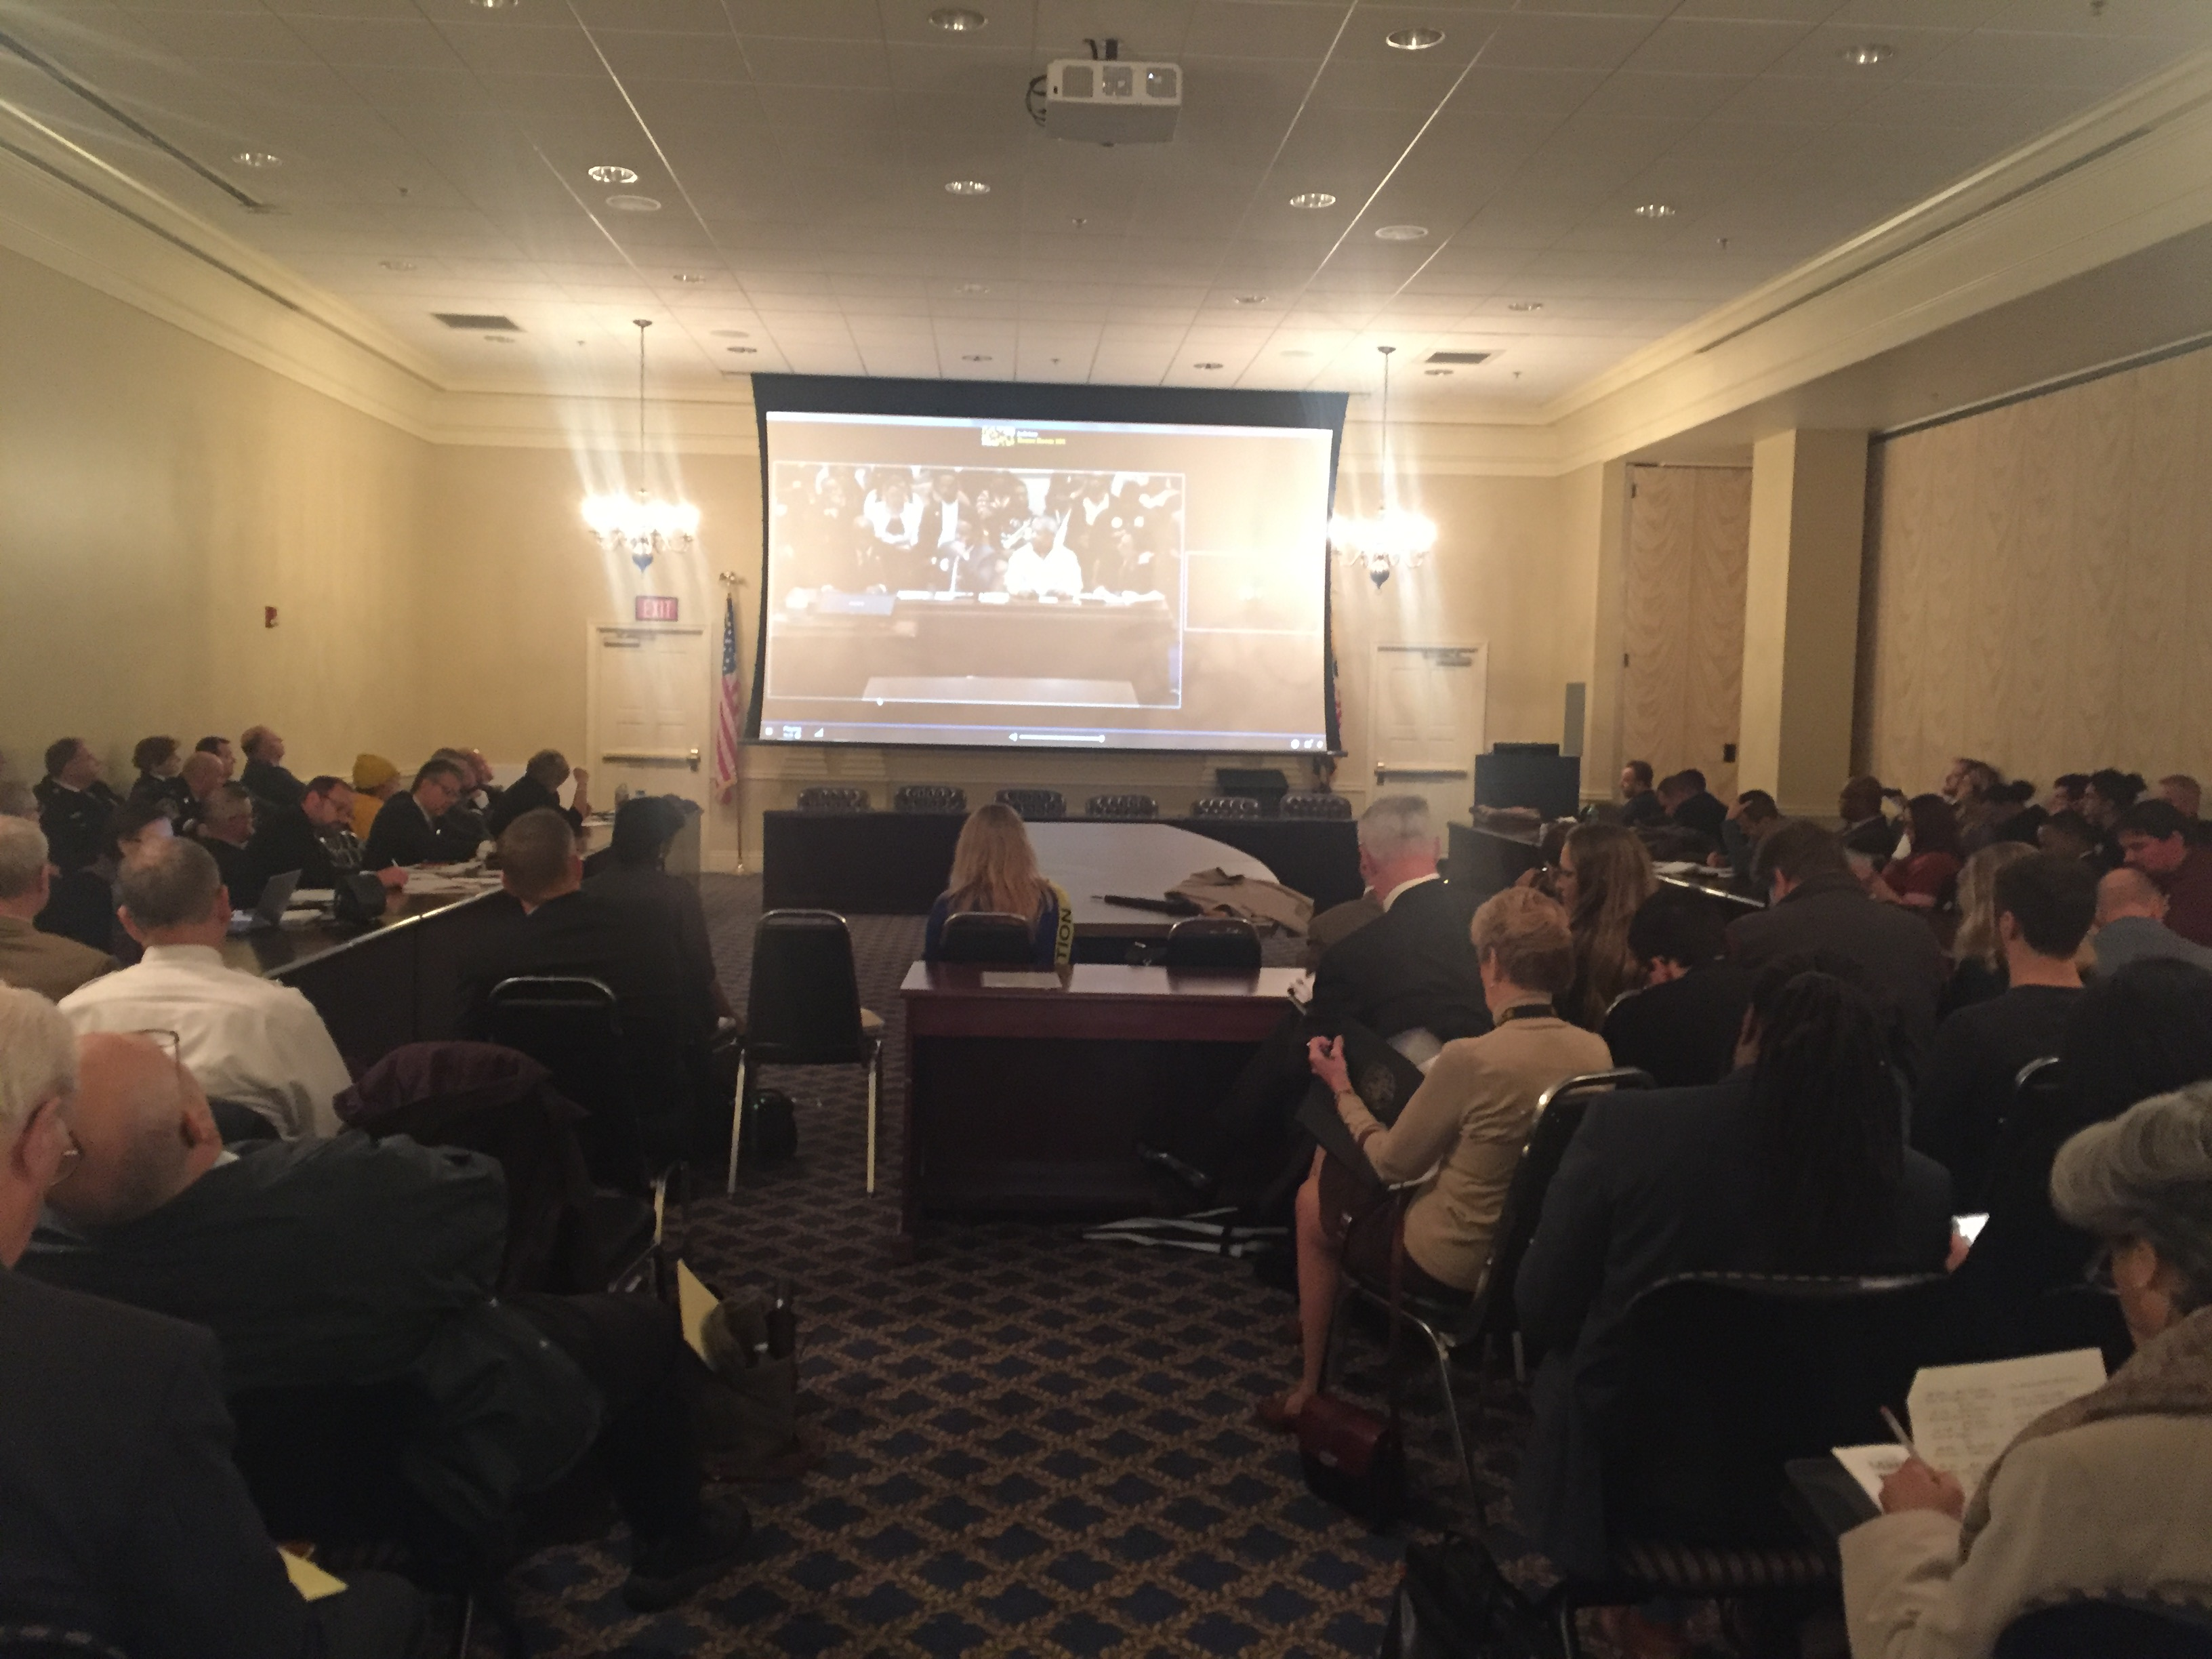 Spectators gather in an overflow room to watch a broadcast of the House Judiciary Committee testimony.